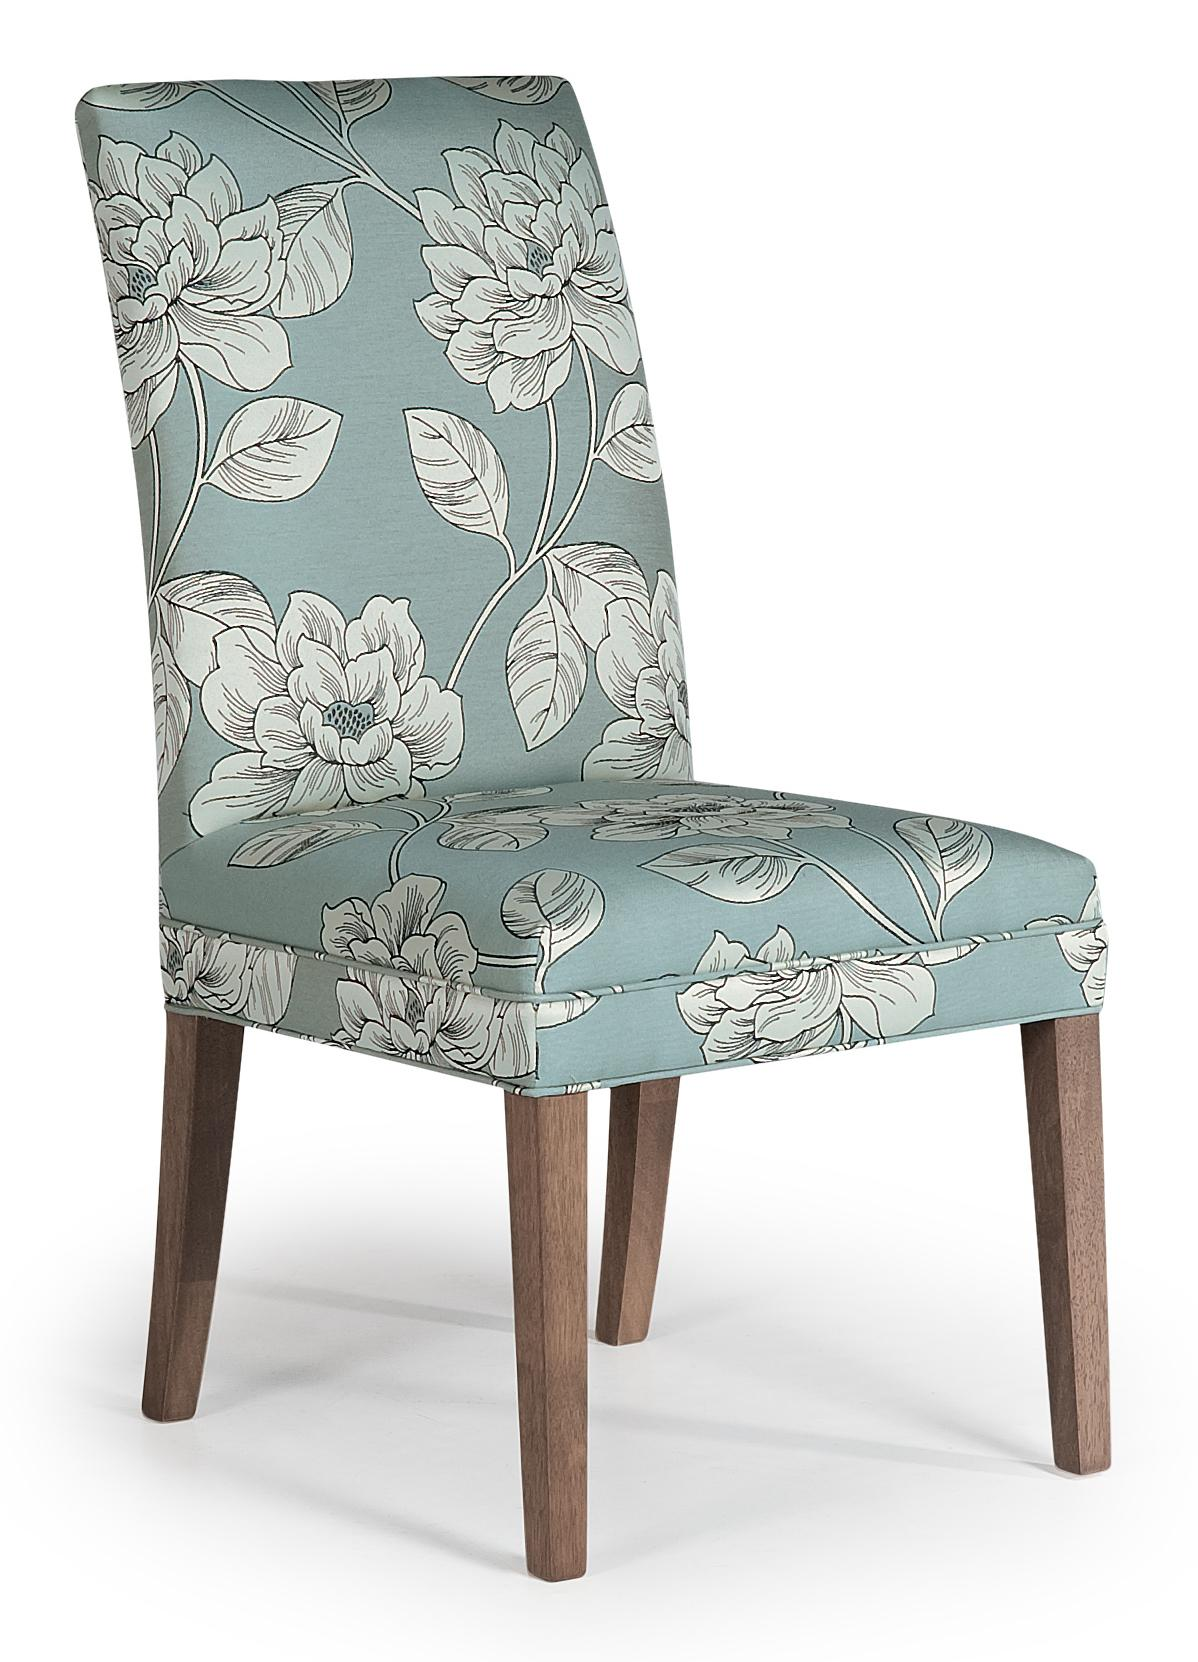 Best Home Furnishings Chairs - Dining Odell Parsons Chair - Item Number: 9800E